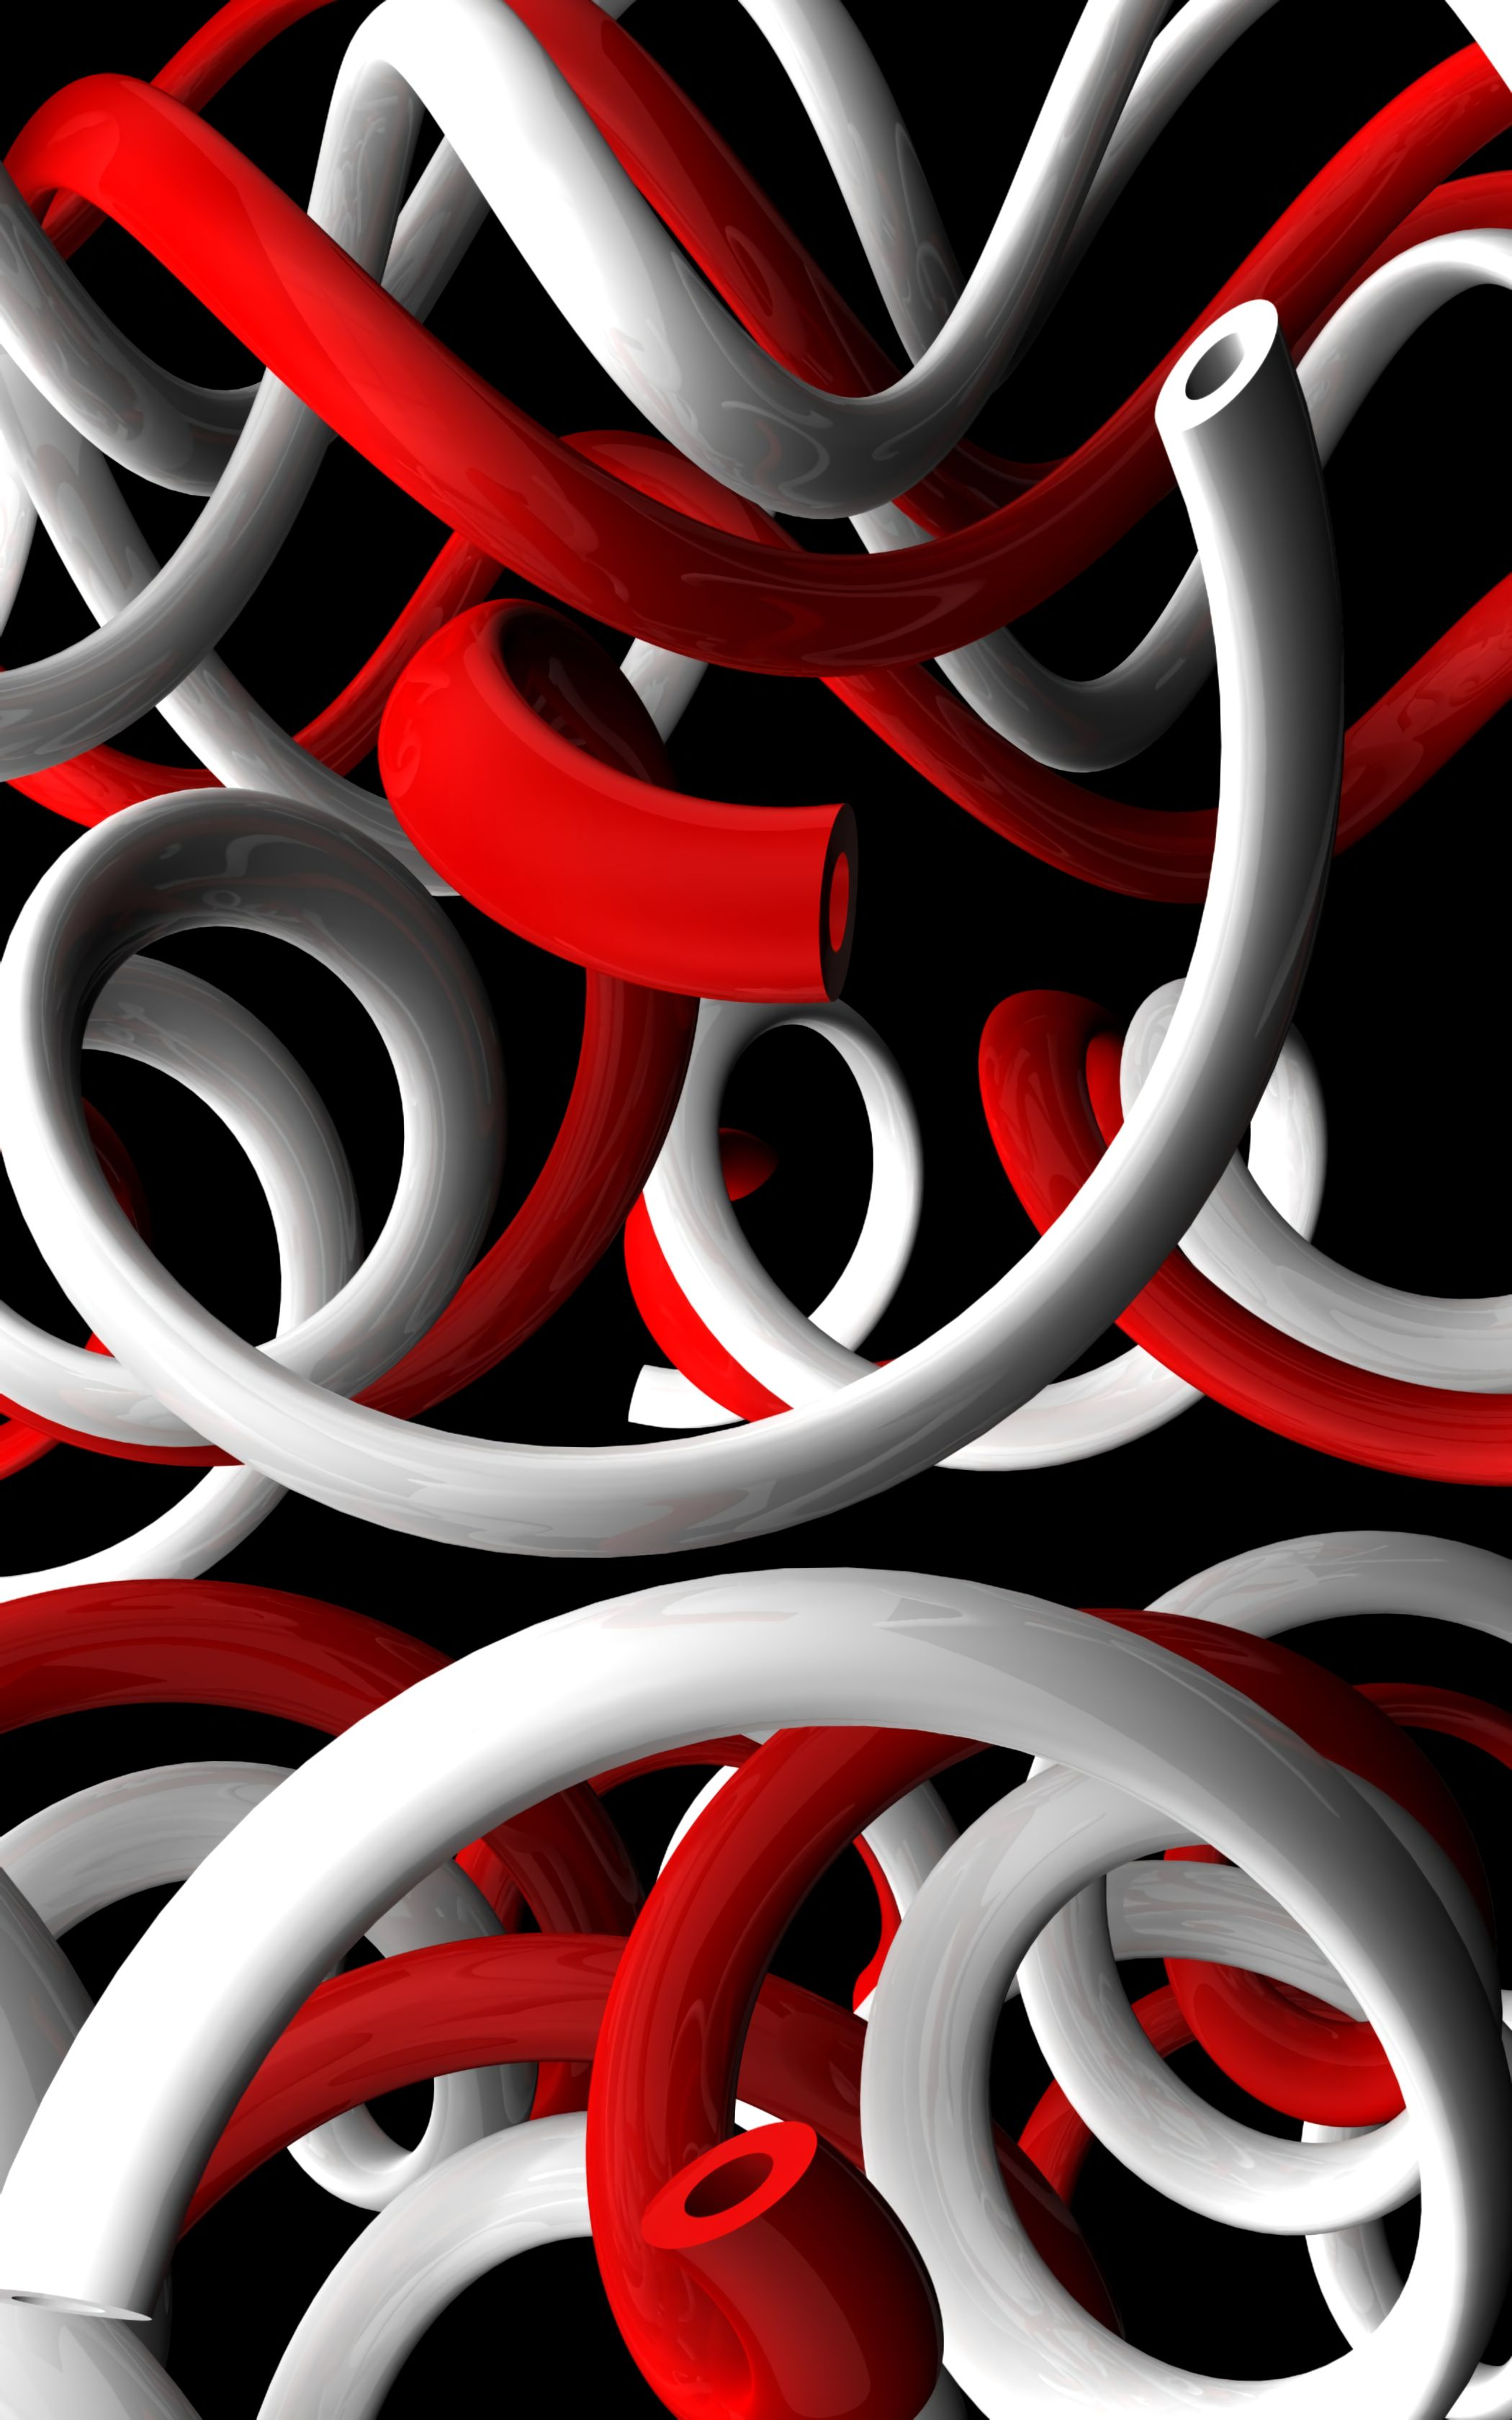 121761 Screensavers and Wallpapers Swirling for phone. Download 3D, Form, Plexus, Forms, Swirling, Involute, Bent, Curved pictures for free